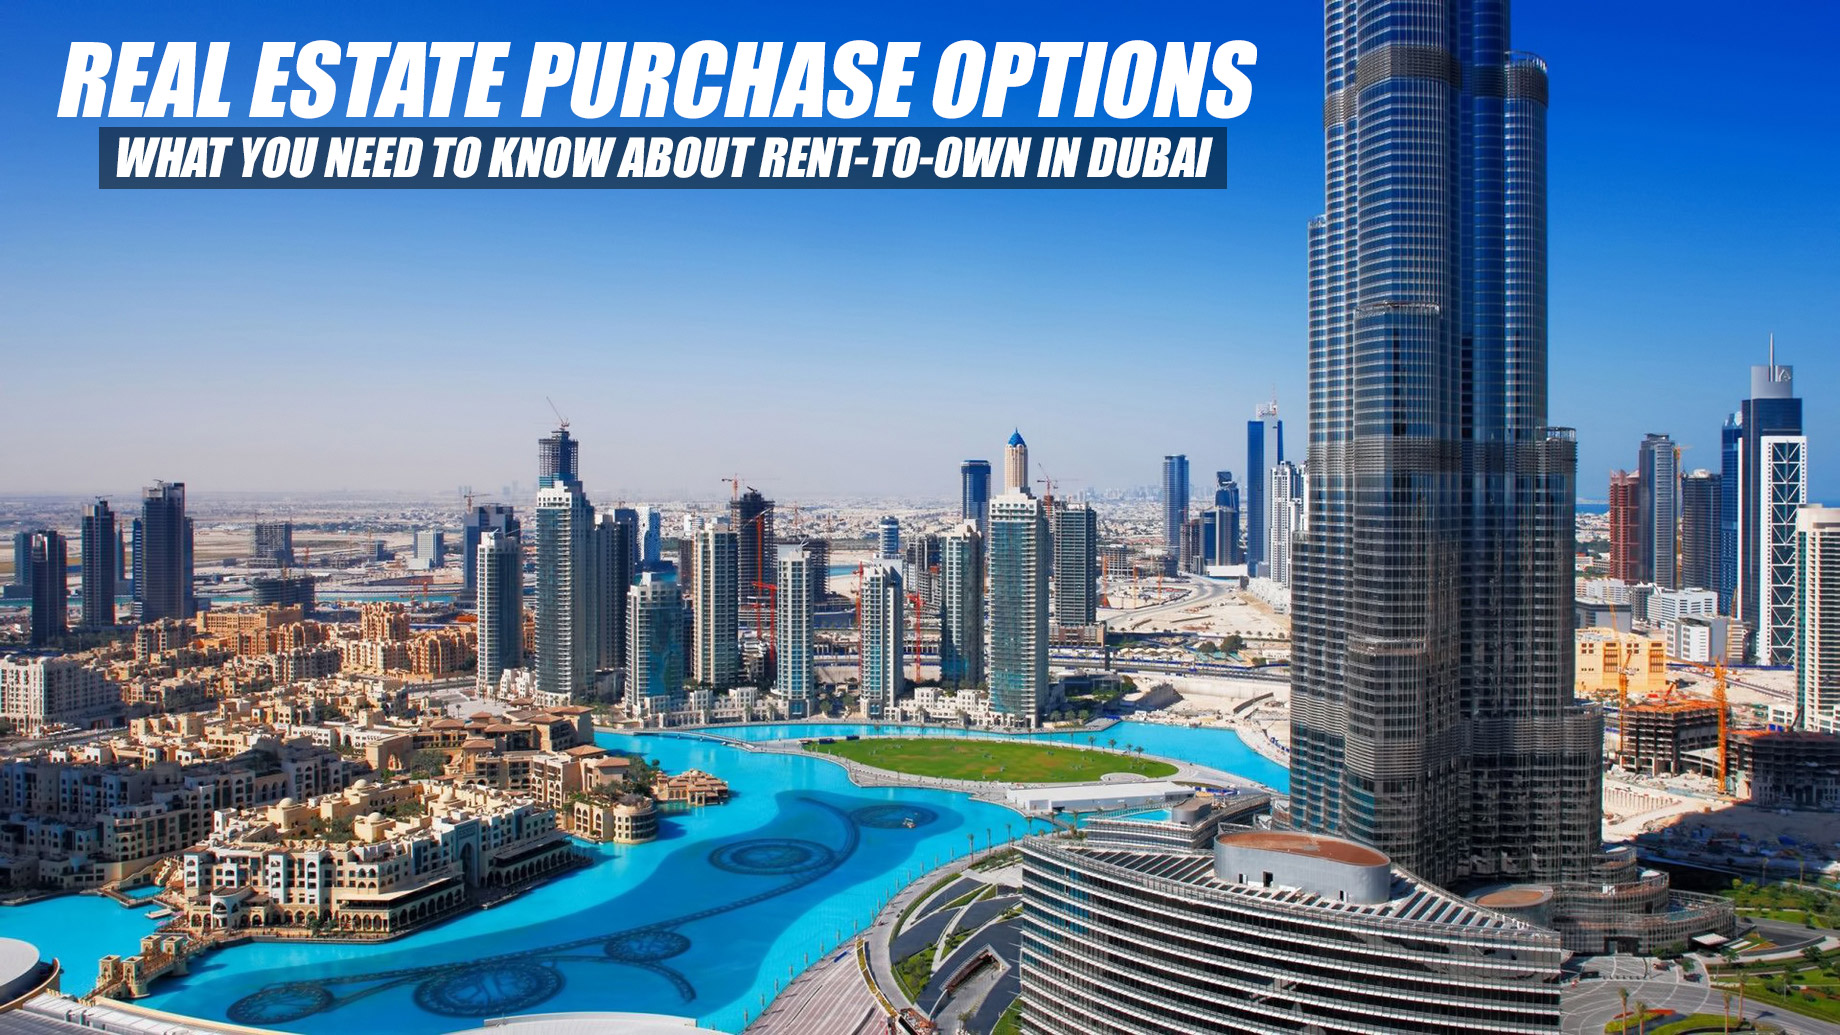 Real Estate Purchase Options - What You Need to Know About Rent-to-Own in Dubai